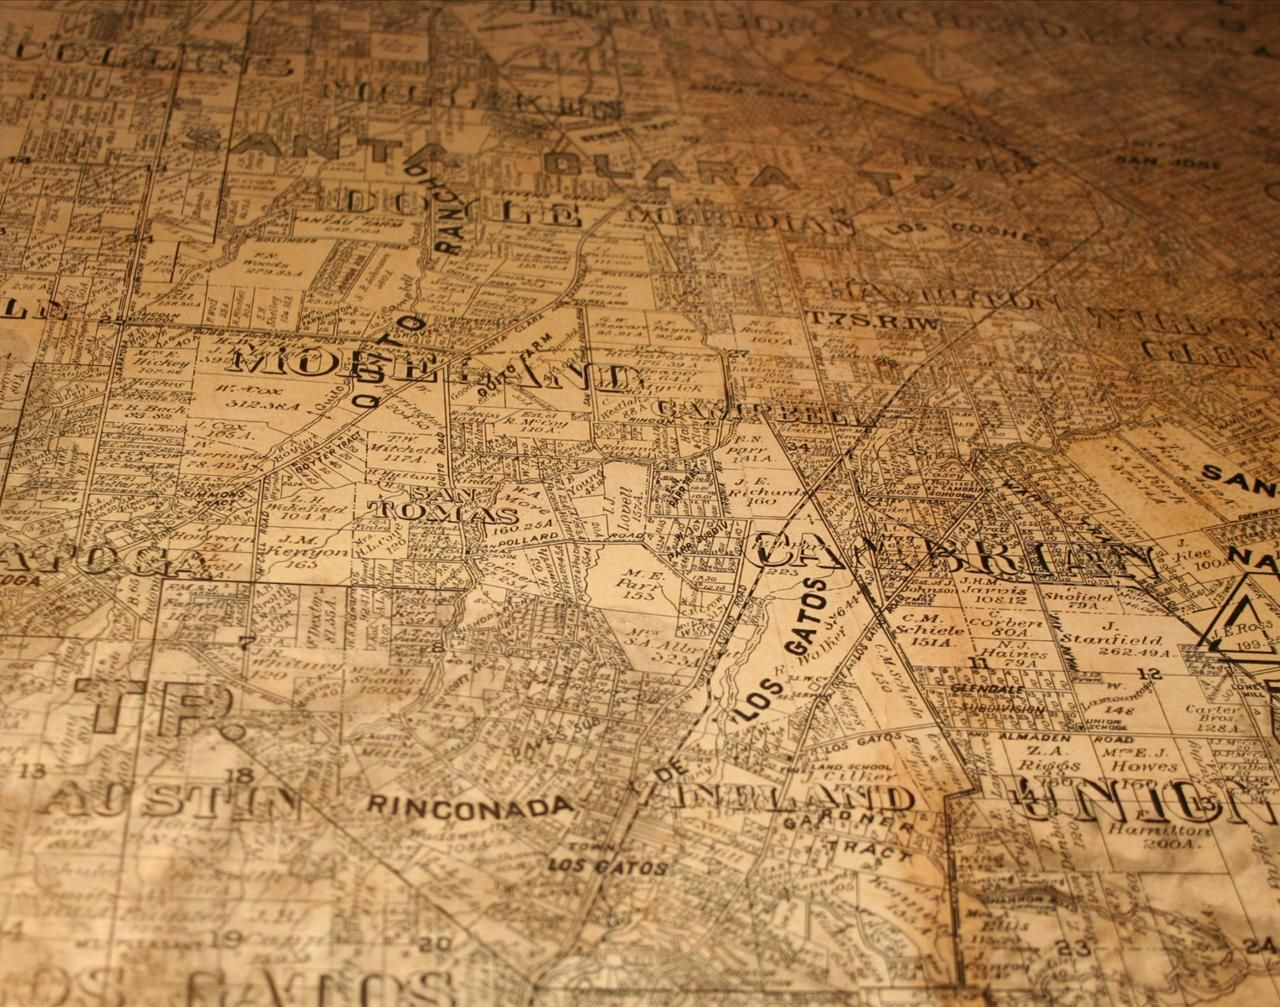 old map background – 1280×1007 High Definition Wallpaper ... Old Map Background on magazine background, newspaper background, old nautical maps, paper background, wood background, old world cartography, key background, old wallpaper, bouquet background, old compass, old boats, old us highway maps, old treasure maps, space background, city background,